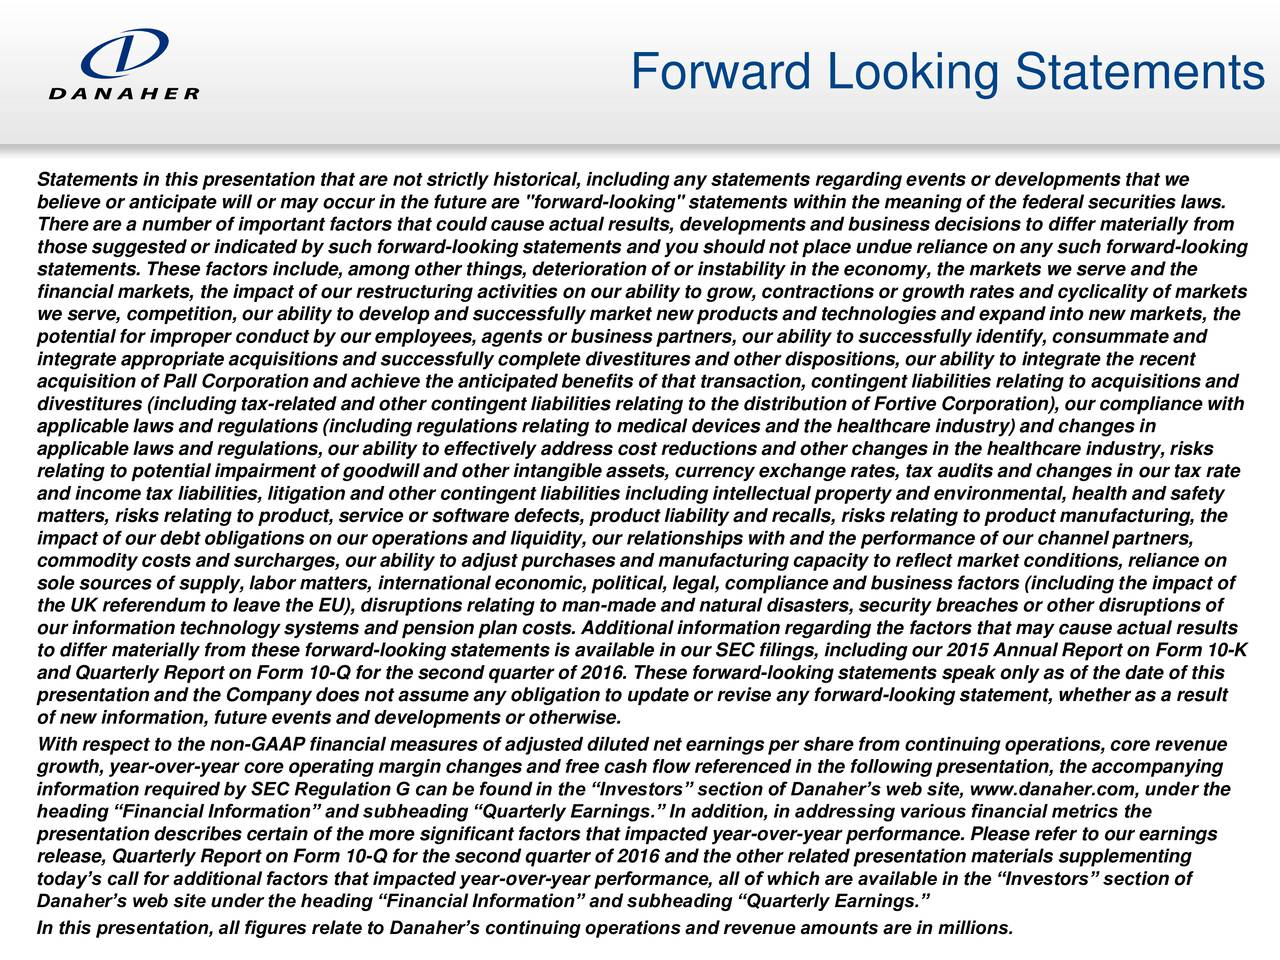 """Statements in this presentation that are not strictly historical, including any statements regarding events or developments that we believe or anticipate will or may occur in the future are """"forward-looking"""" statements within the meaning of the federal securities laws. There are a number of important factors that could cause actual results, developments and business decisions to differ materially from those suggested or indicated by such forward-looking statements and you should not place undue reliance on any such forward-looking statements. These factors include, among other things, deterioration of or instability in the economy, the markets we serve and the financial markets, the impact of our restructuring activities on our ability to grow, contractions or growth rates and cyclicality of markets we serve, competition, our ability to develop and successfully market new products and technologies and expand into new markets, the potential for improper conduct by our employees, agents or business partners, our ability to successfully identify, consummate and integrate appropriate acquisitions and successfully complete divestitures and other dispositions, our ability to integrate the recent acquisition of Pall Corporation and achieve the anticipated benefits of that transaction, contingent liabilities relating to acquisitions and divestitures (including tax-related and other contingent liabilities relating to the distribution of Fortive Corporation), our compliance with applicable laws and regulations (including regulations relating to medical devices and the healthcare industry) and changes in applicable laws and regulations, our ability to effectively address cost reductions and other changes in the healthcare industry, risks relating to potential impairment of goodwill and other intangible assets, currency exchange rates, tax audits and changes in our tax rate and income tax liabilities, litigation and other contingent liabilities including intellectual property a"""